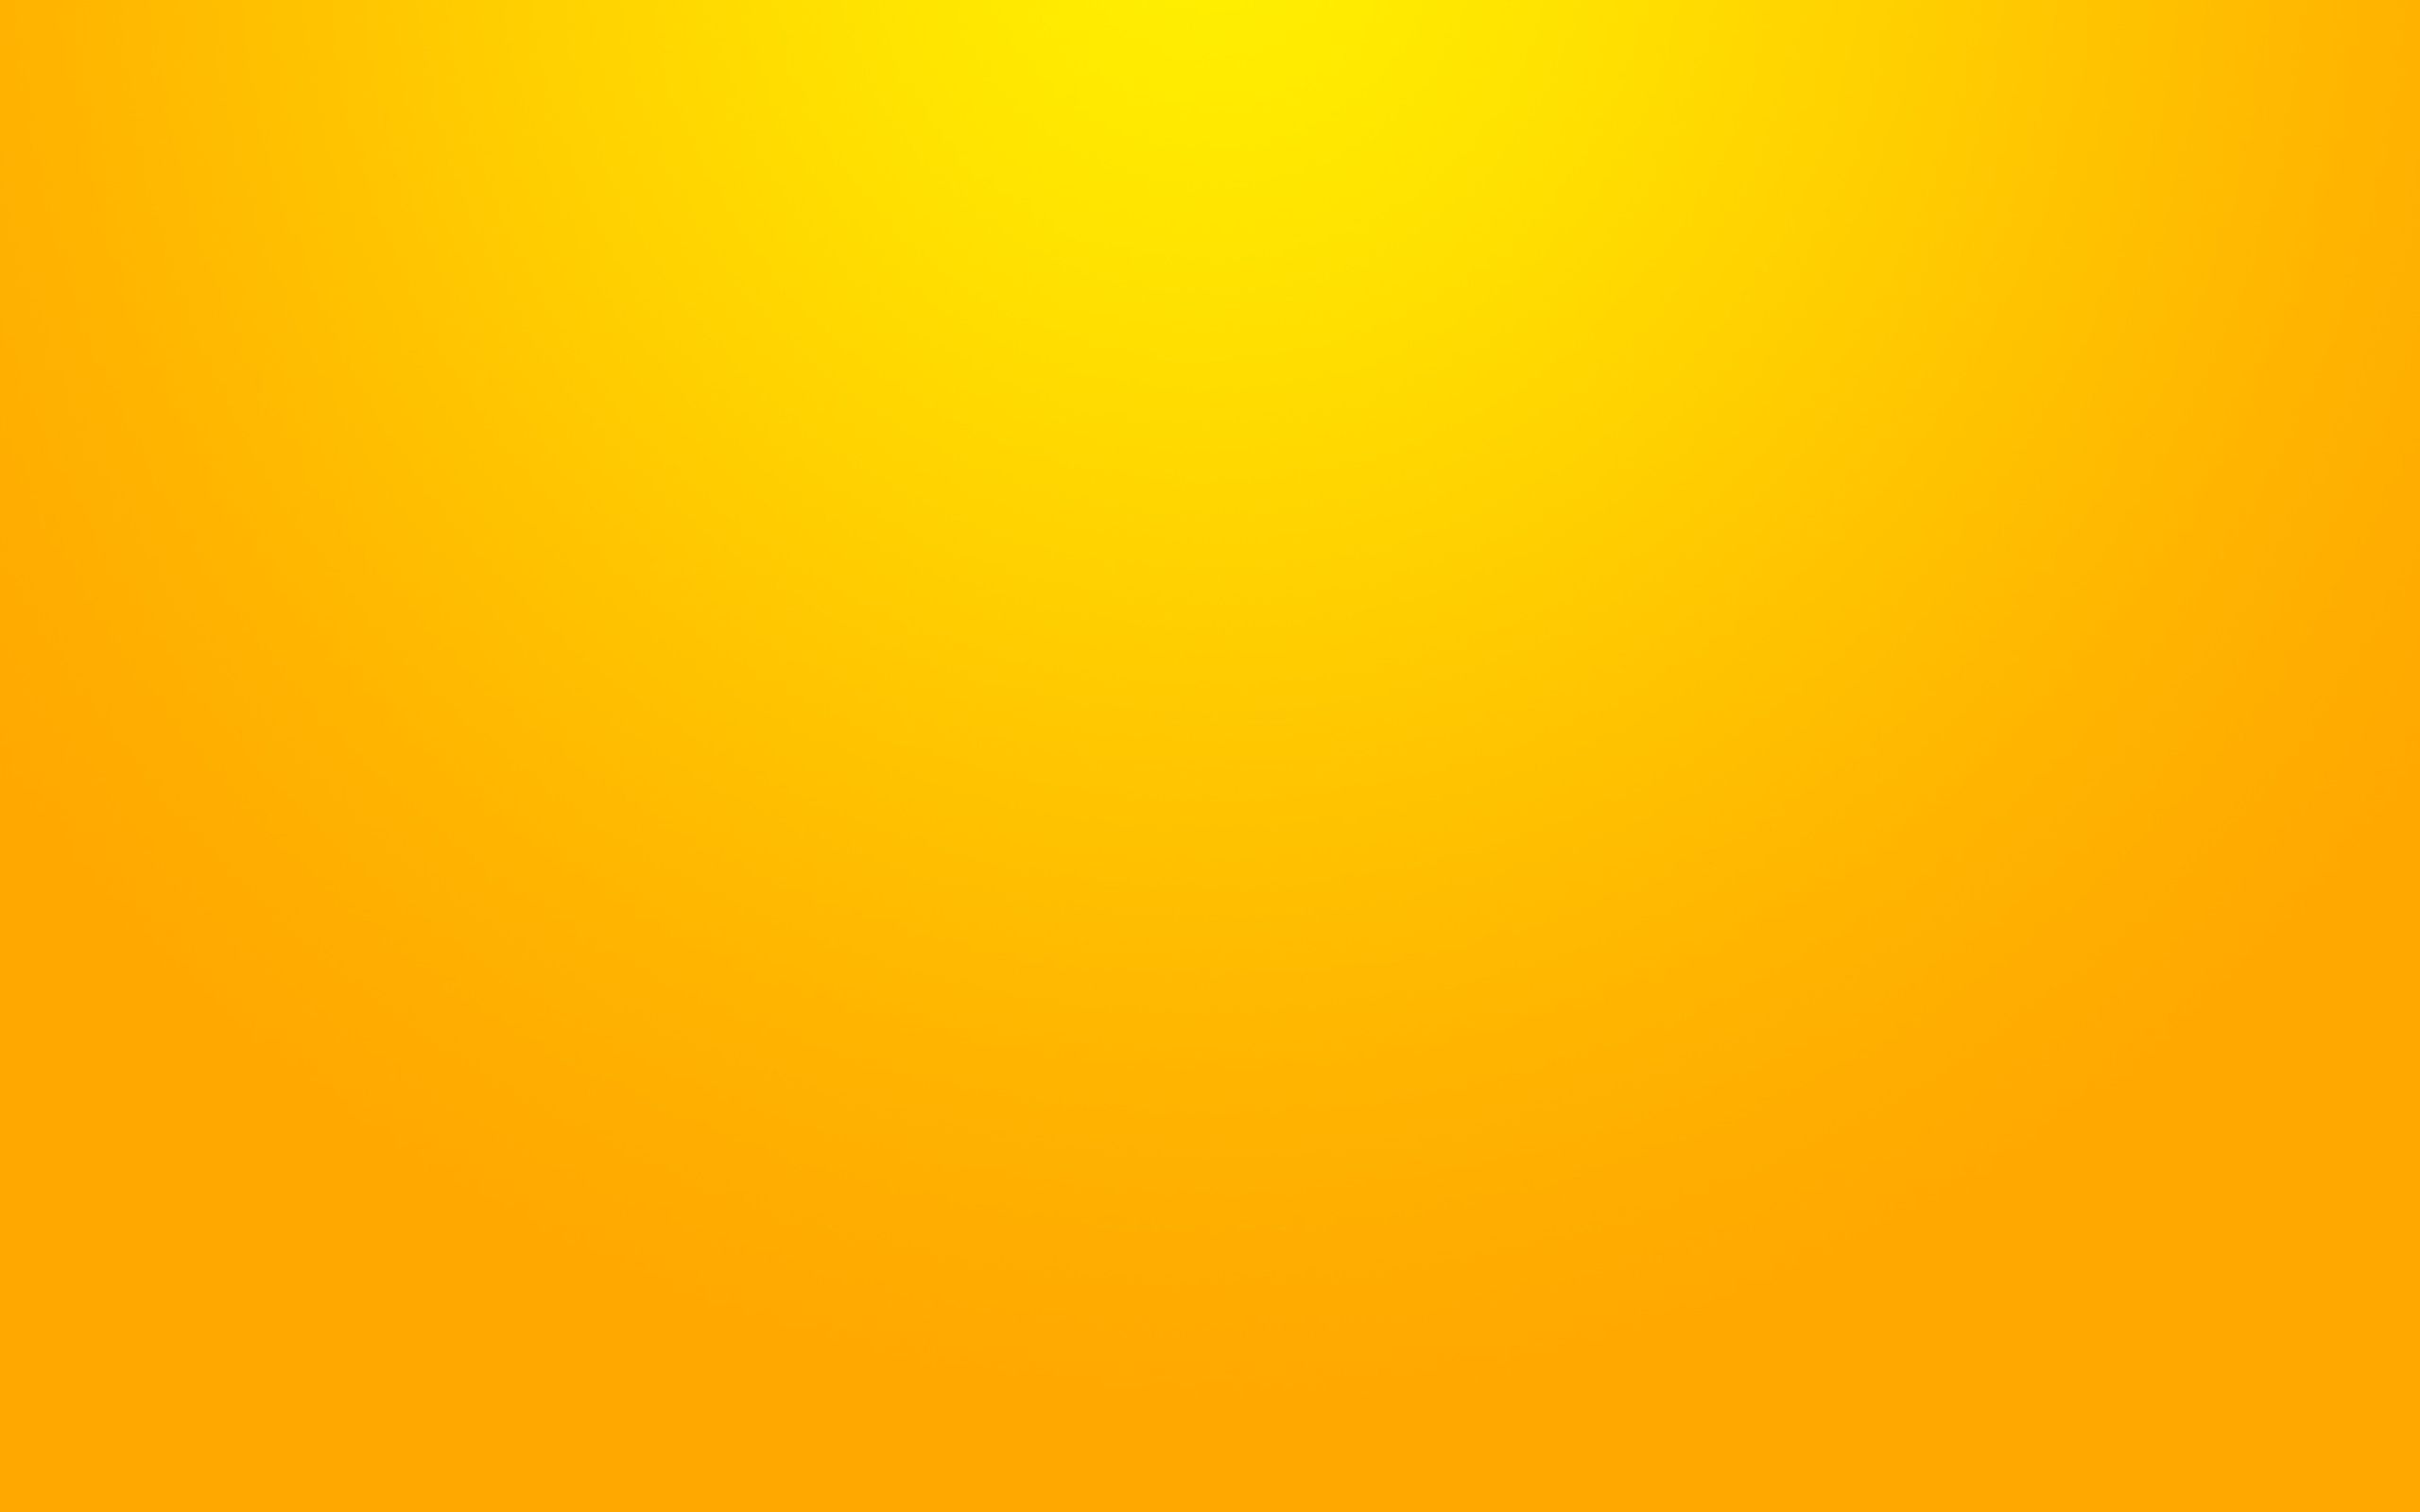 yellow background photos and - photo #9